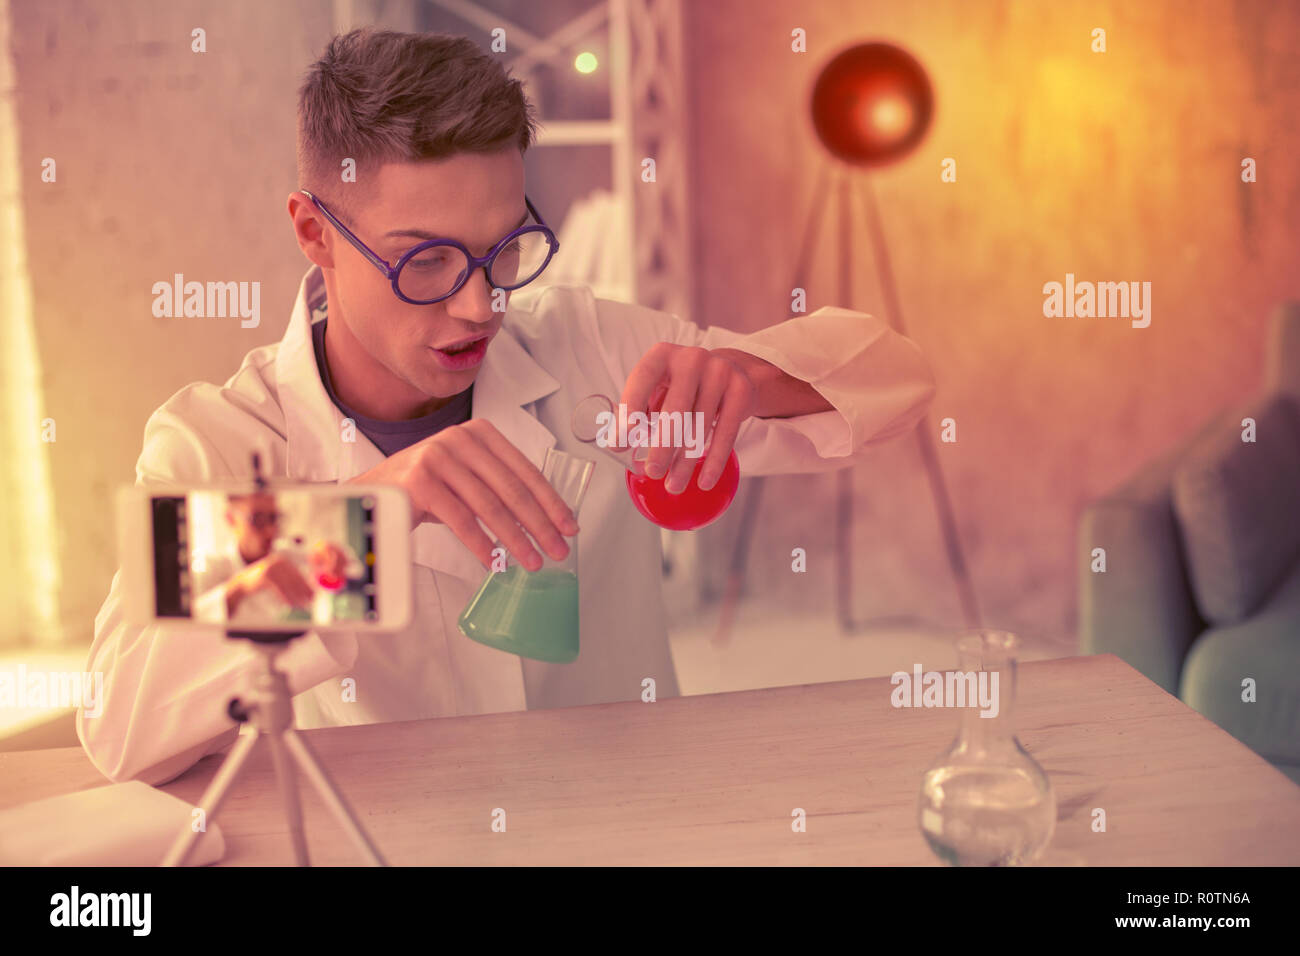 Curious scientist organizing chemistry experimentation at home - Stock Image